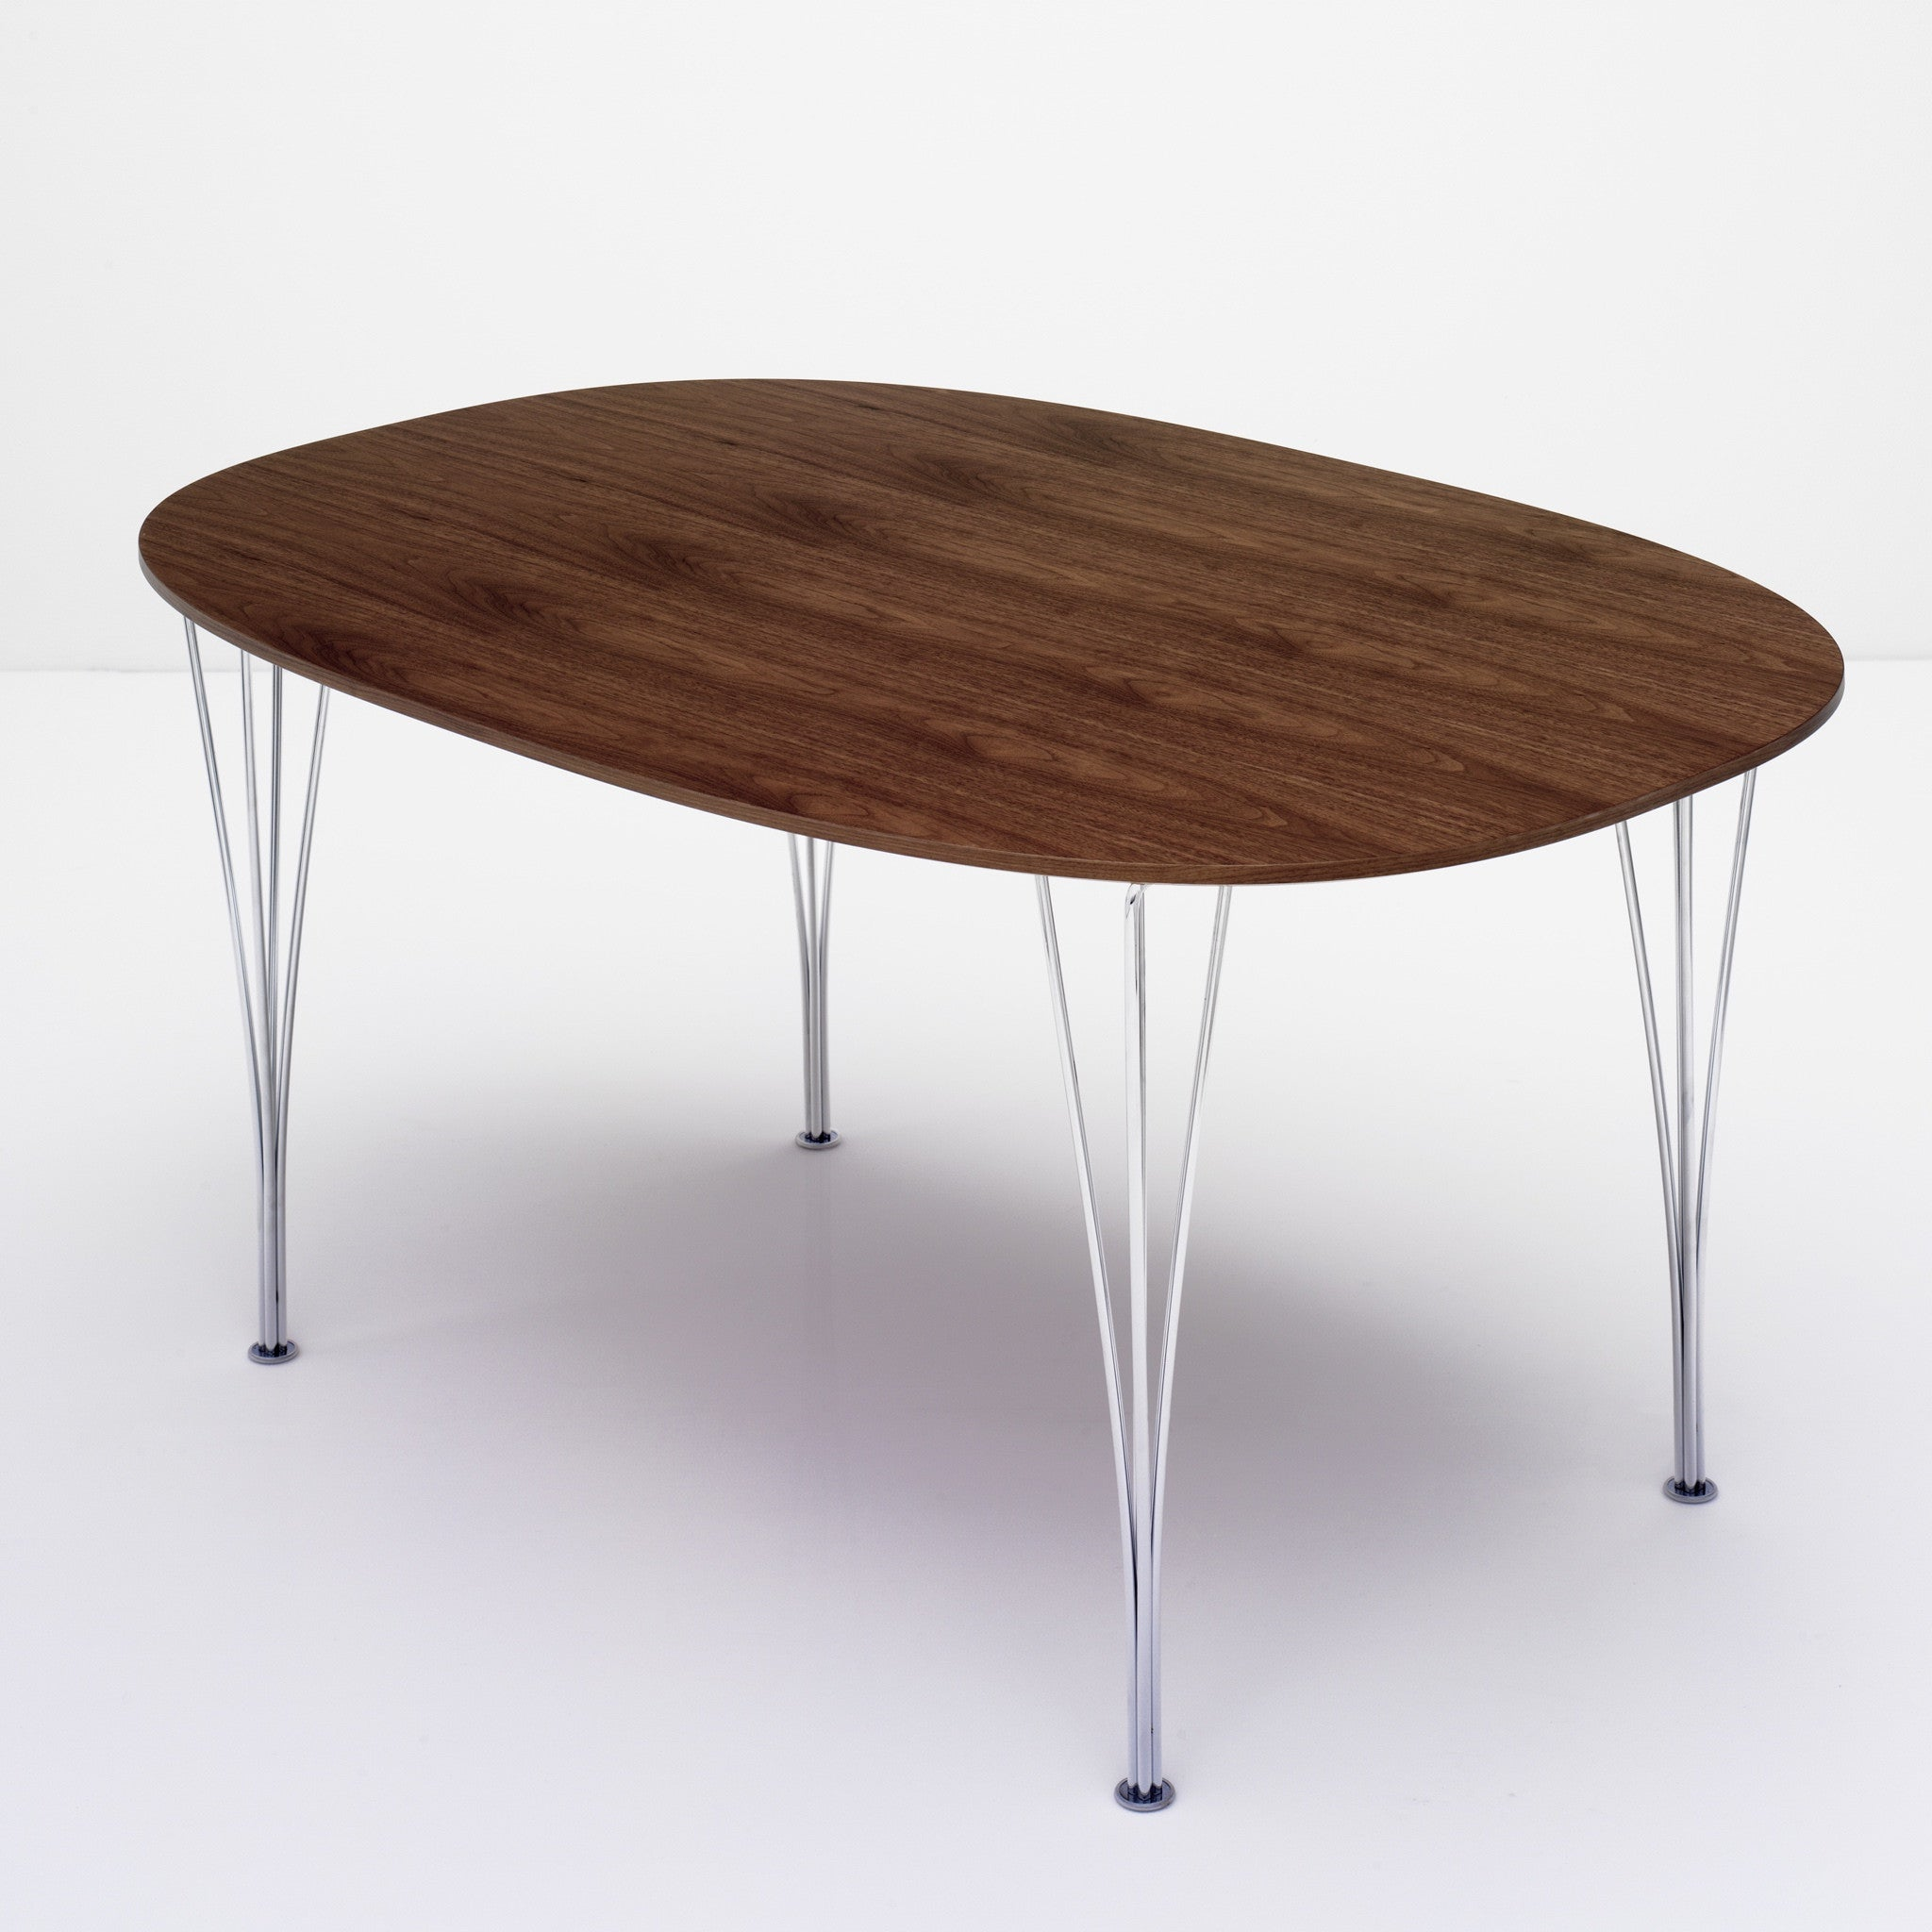 Delicieux Super Elliptical Table By Piet Hein U0026 Bruno Mathsson U2014 Haus®